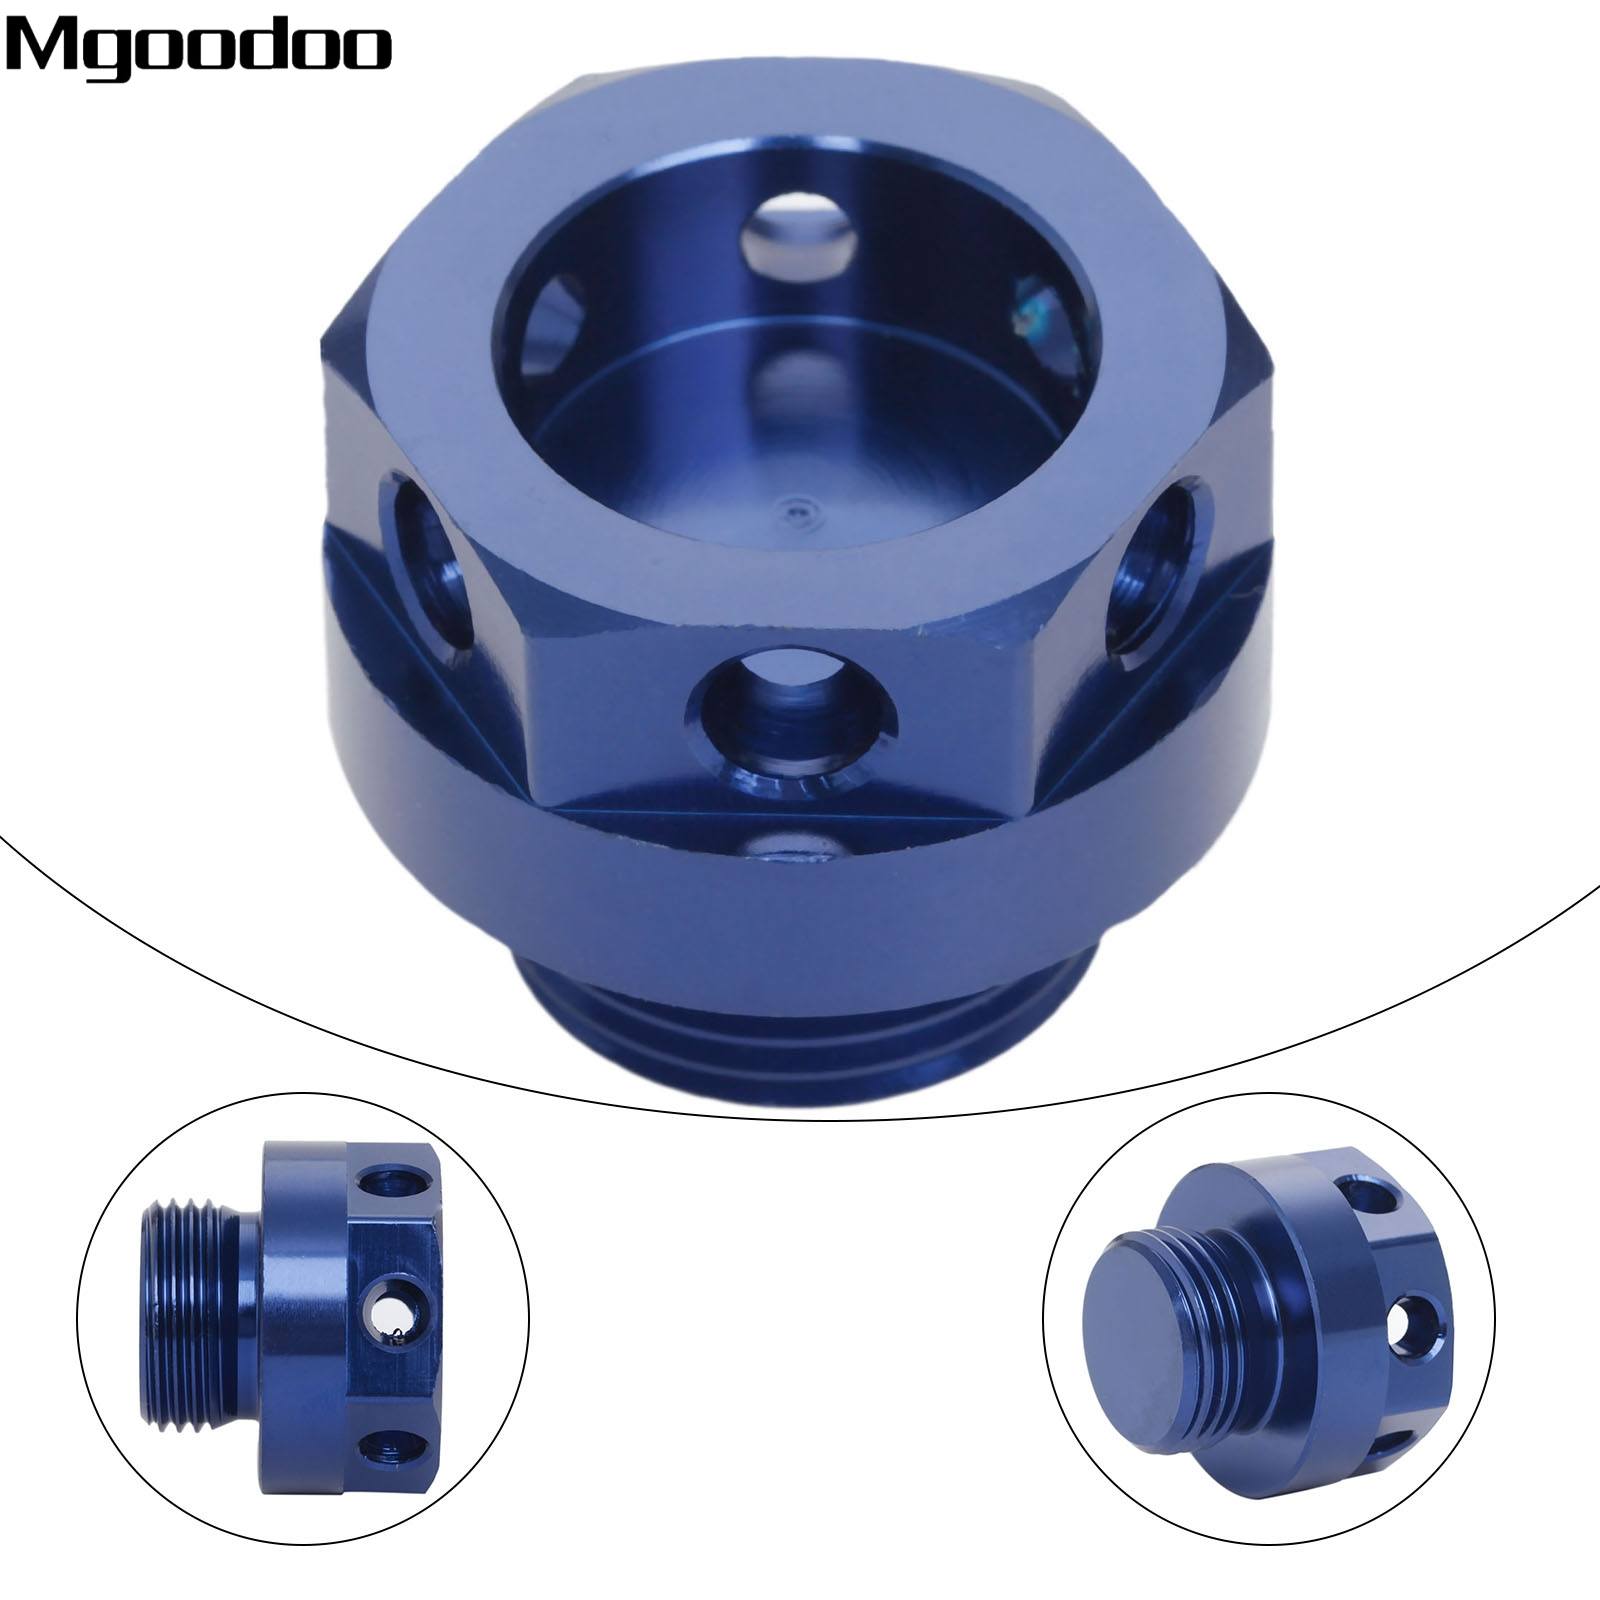 Mgoodoo CNC Aluminum Motorcycle Engine Oil Filler Cap Cover Screw For Suzuki GSX-R600 R750 R1000 GSX1300R DL650 DL1000 V-Strom motorcycle engine cover camshaft plug crankcase cap oil filler cover screw for honda cbr500r cb500f nc700 nc750 2013 2014